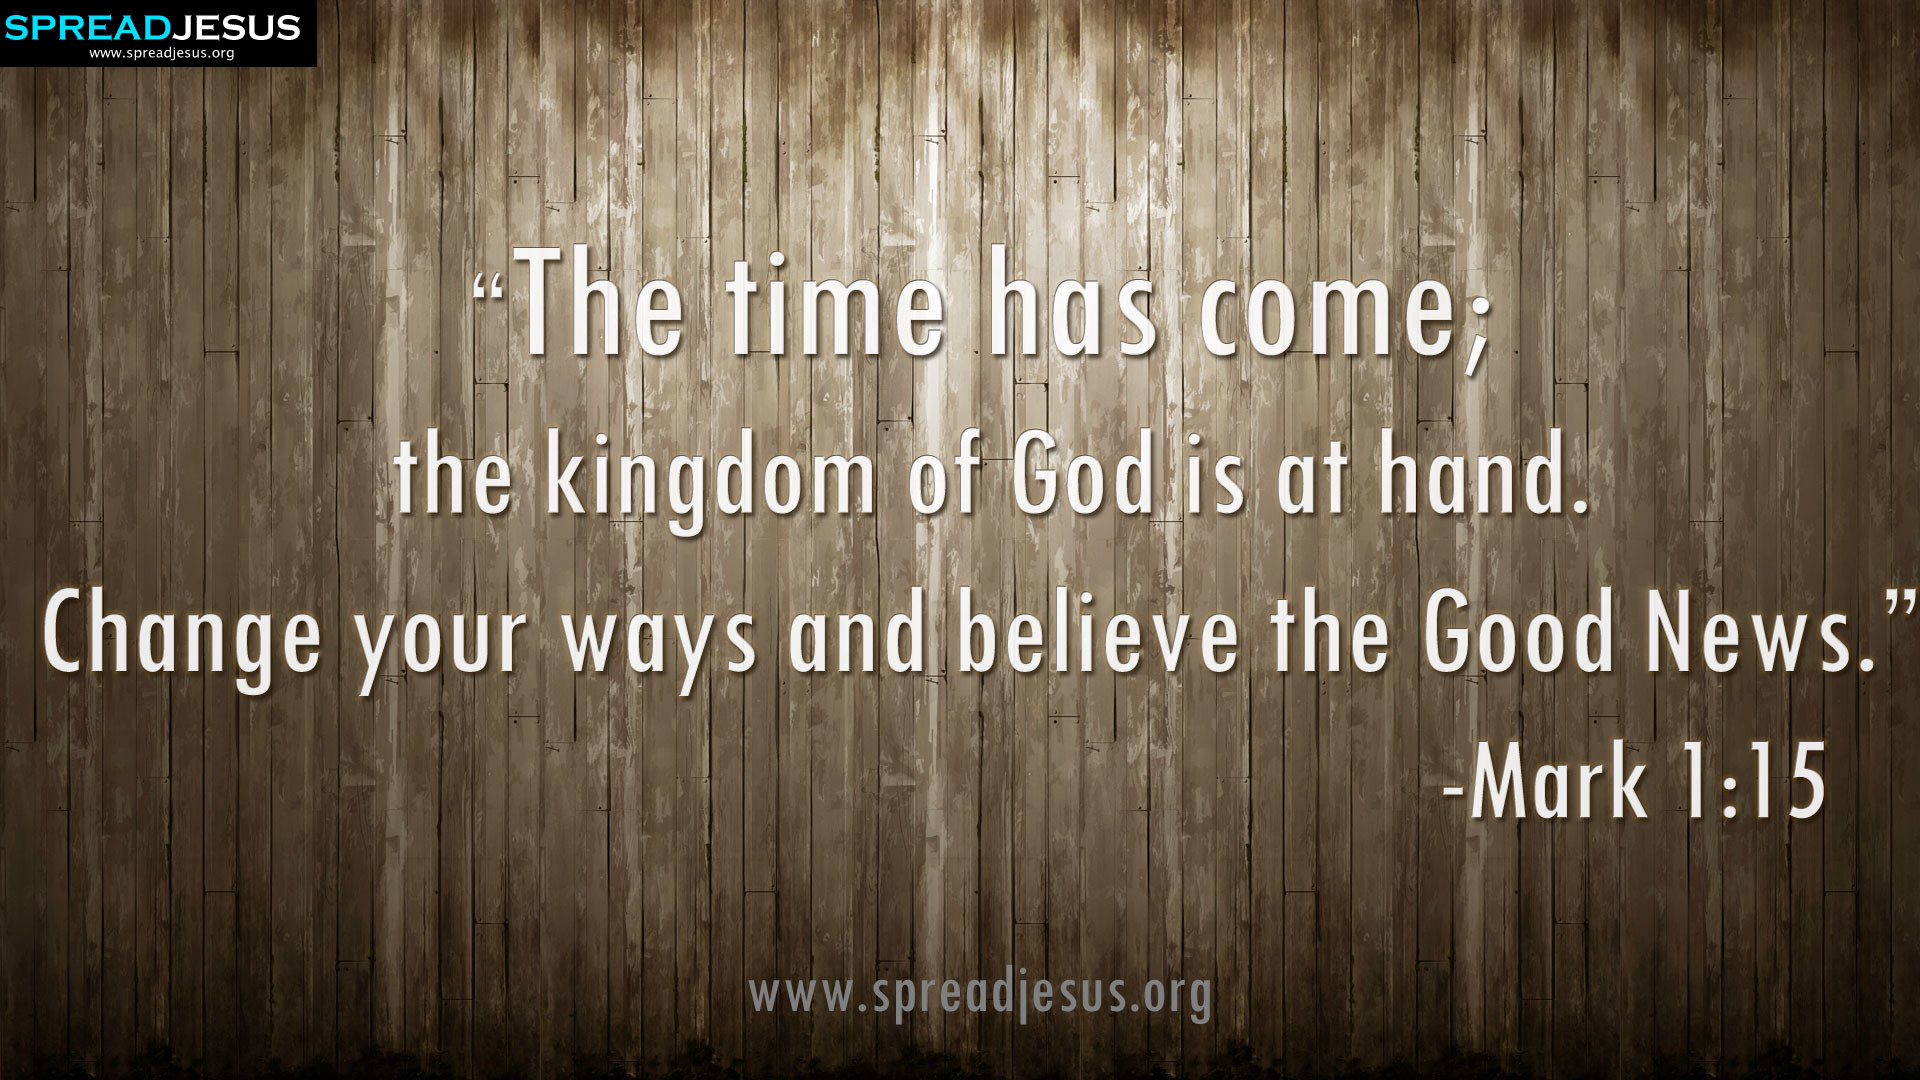 Change your ways and believe the Good News